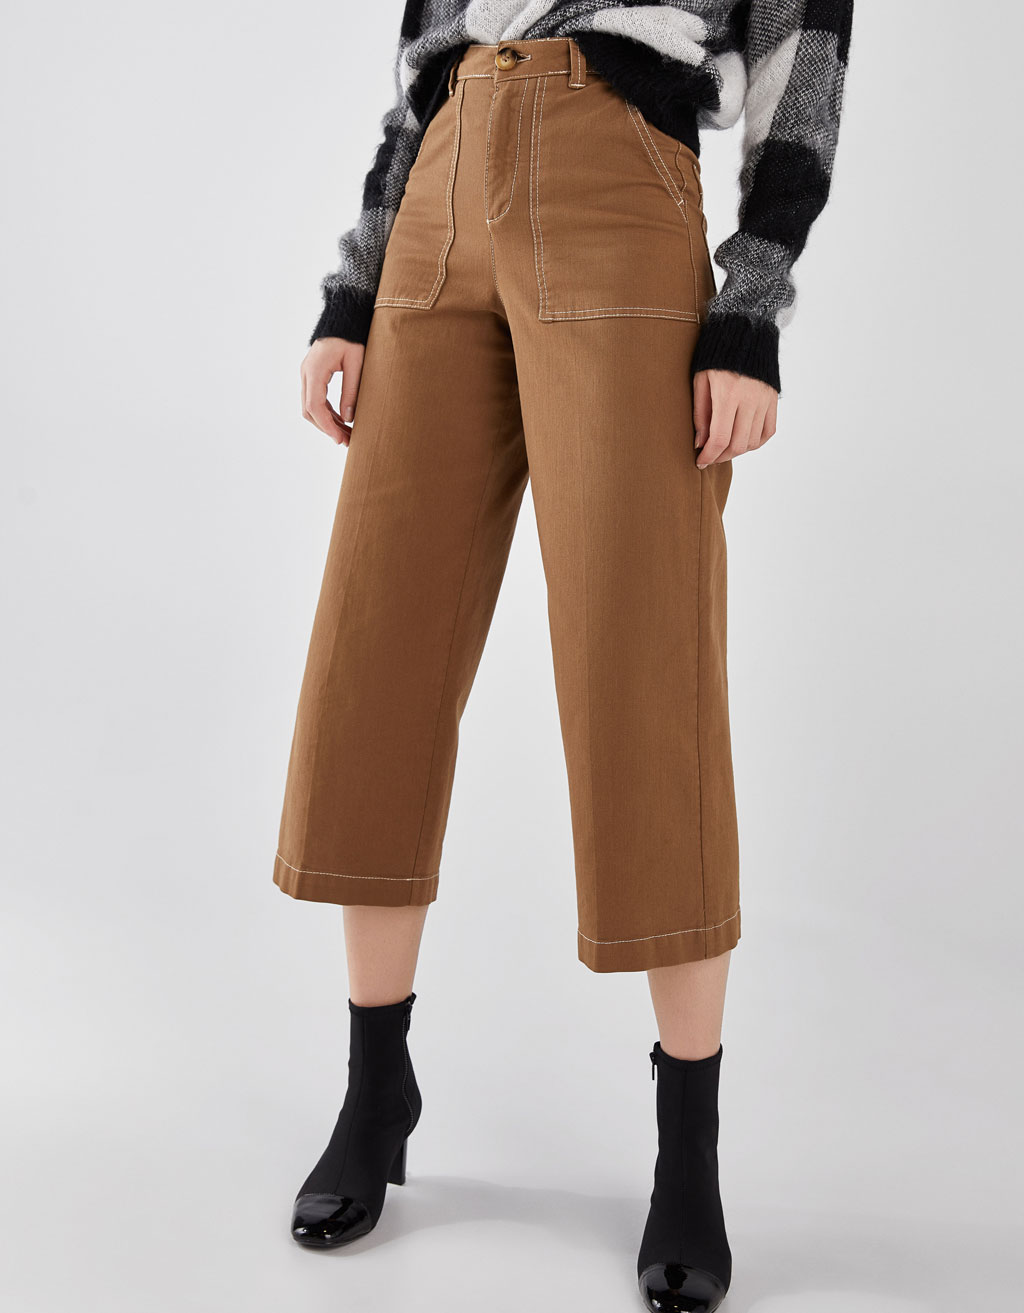 Culottes with contrasting seams